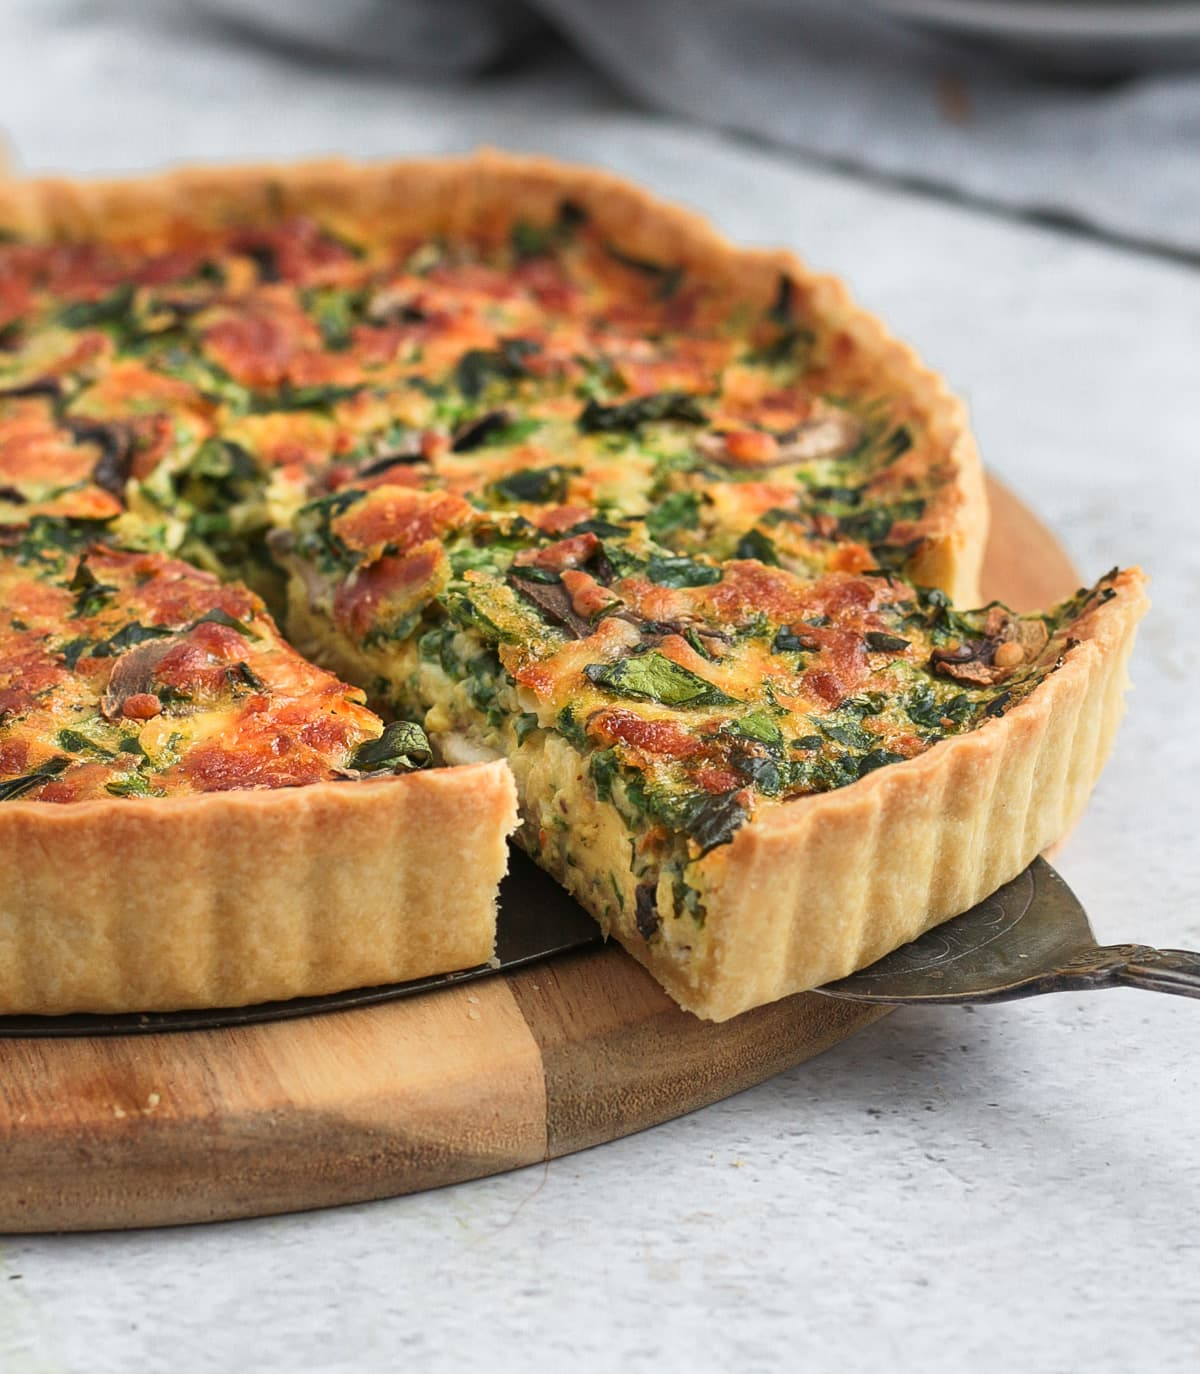 Taking a slice of the quiche